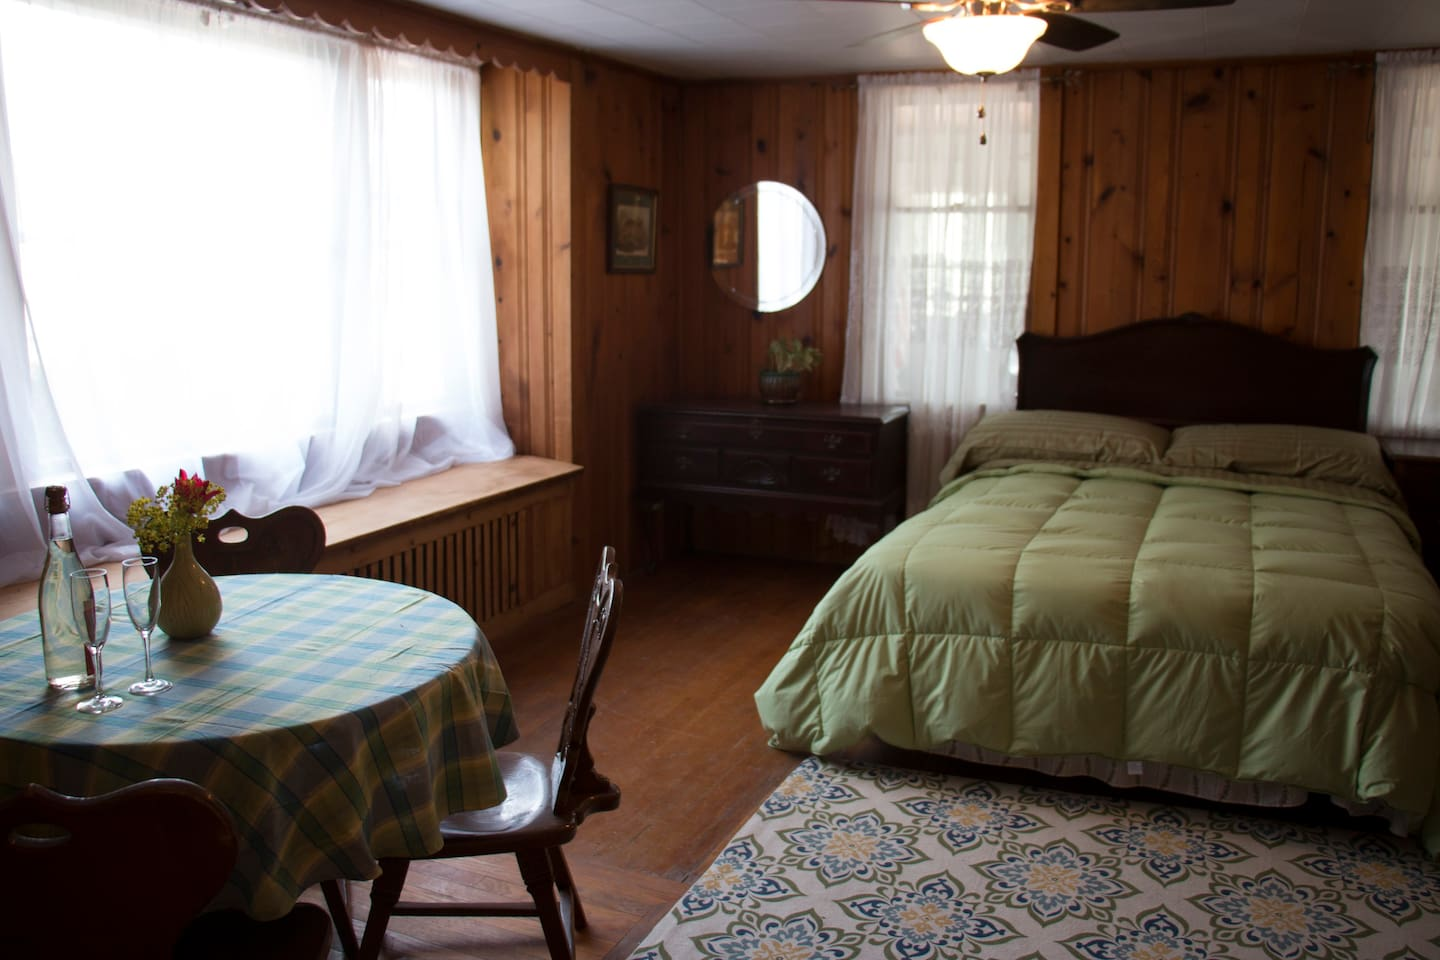 Your home away from home while enjoying the Finger Lakes!